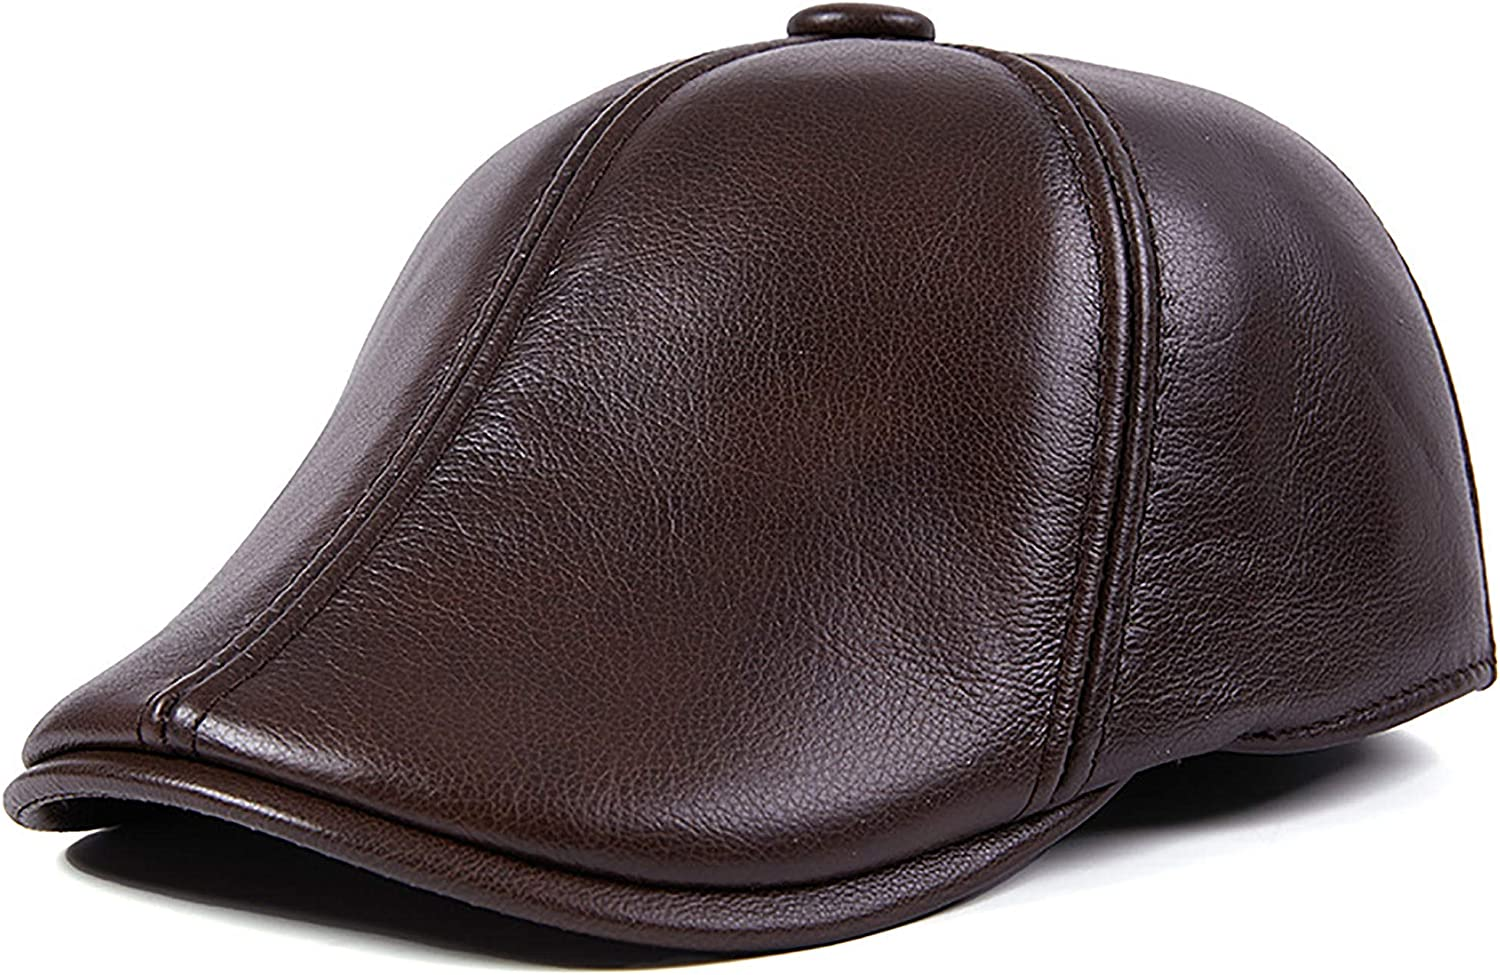 LXFMZ Men's Berets Traditional Manufacturer direct delivery Flat Product Leather Top Hat Caps Beret